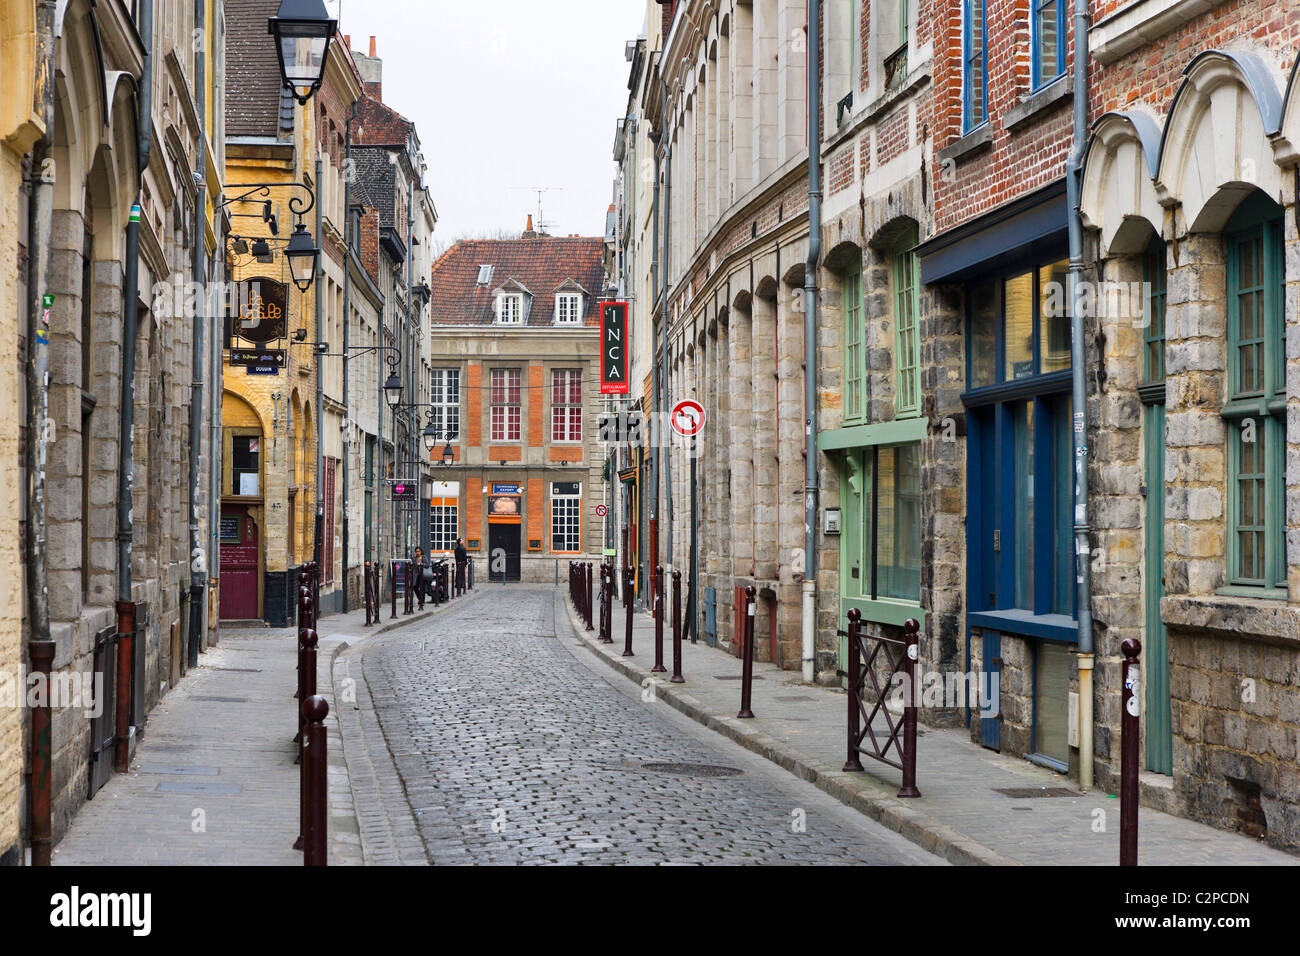 Chambre D Hote Vieux Lille Lille France Old Town Stock Photos Lille France Old Town Stock